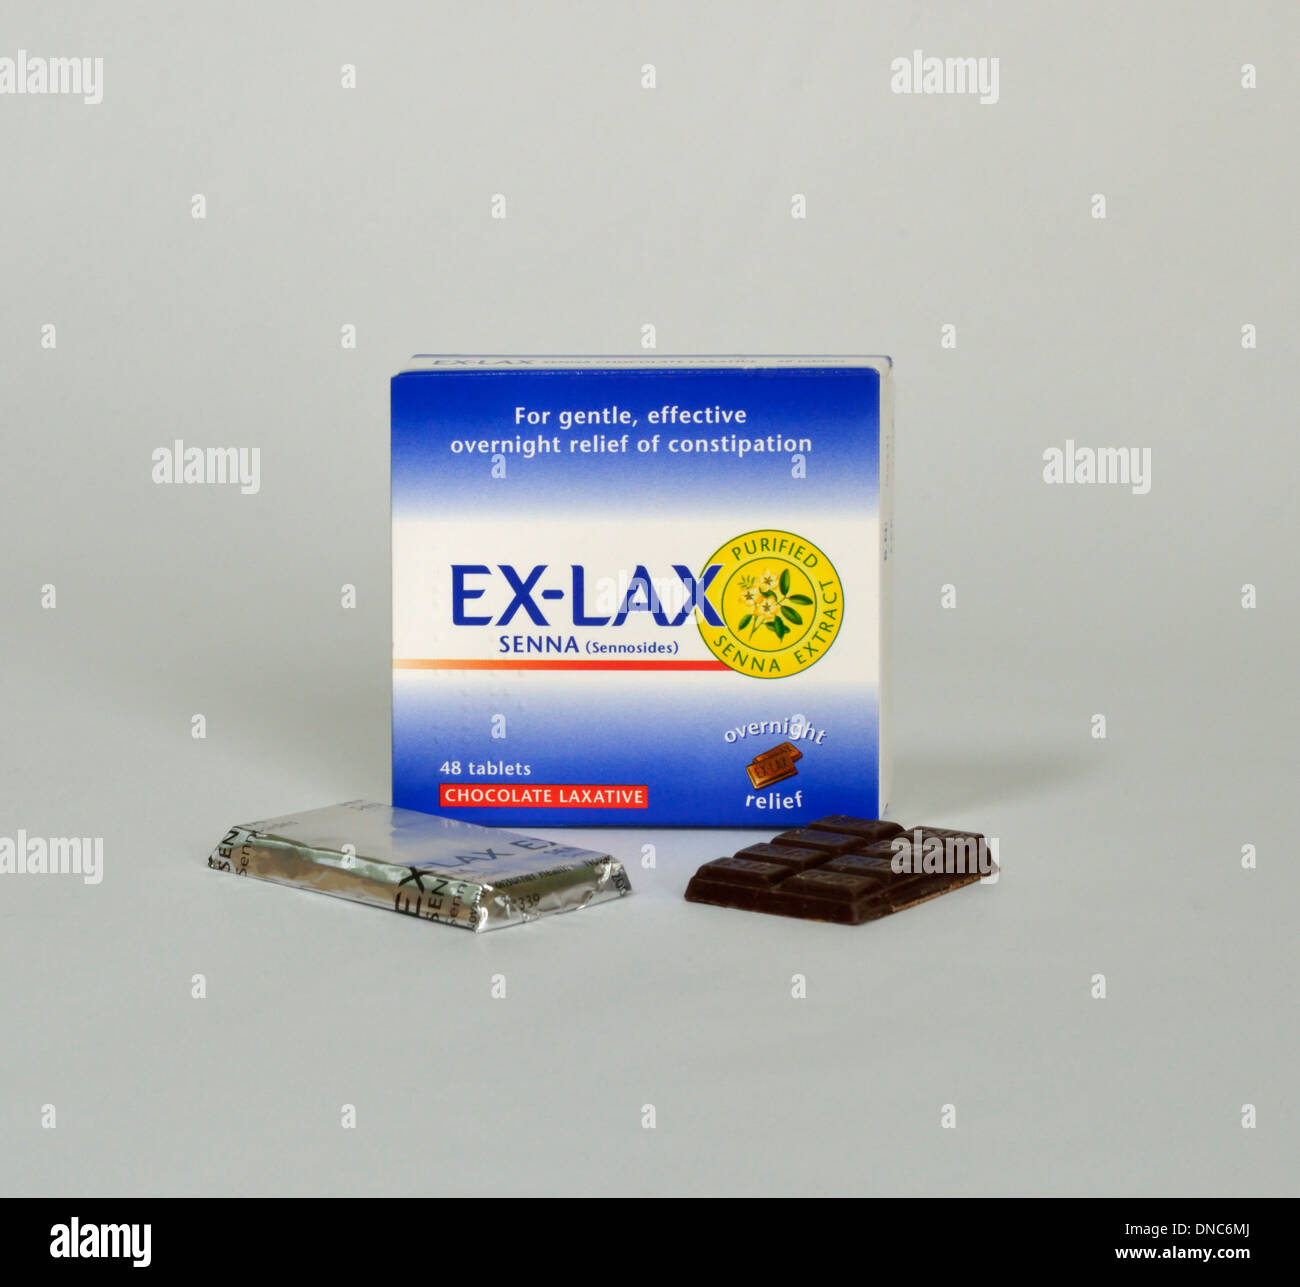 EX-LAX Senna (Sennosides) Purified senna extract. For gentle, effective relief of constipation. 48 tablets. Chocolate laxative. - Stock Image